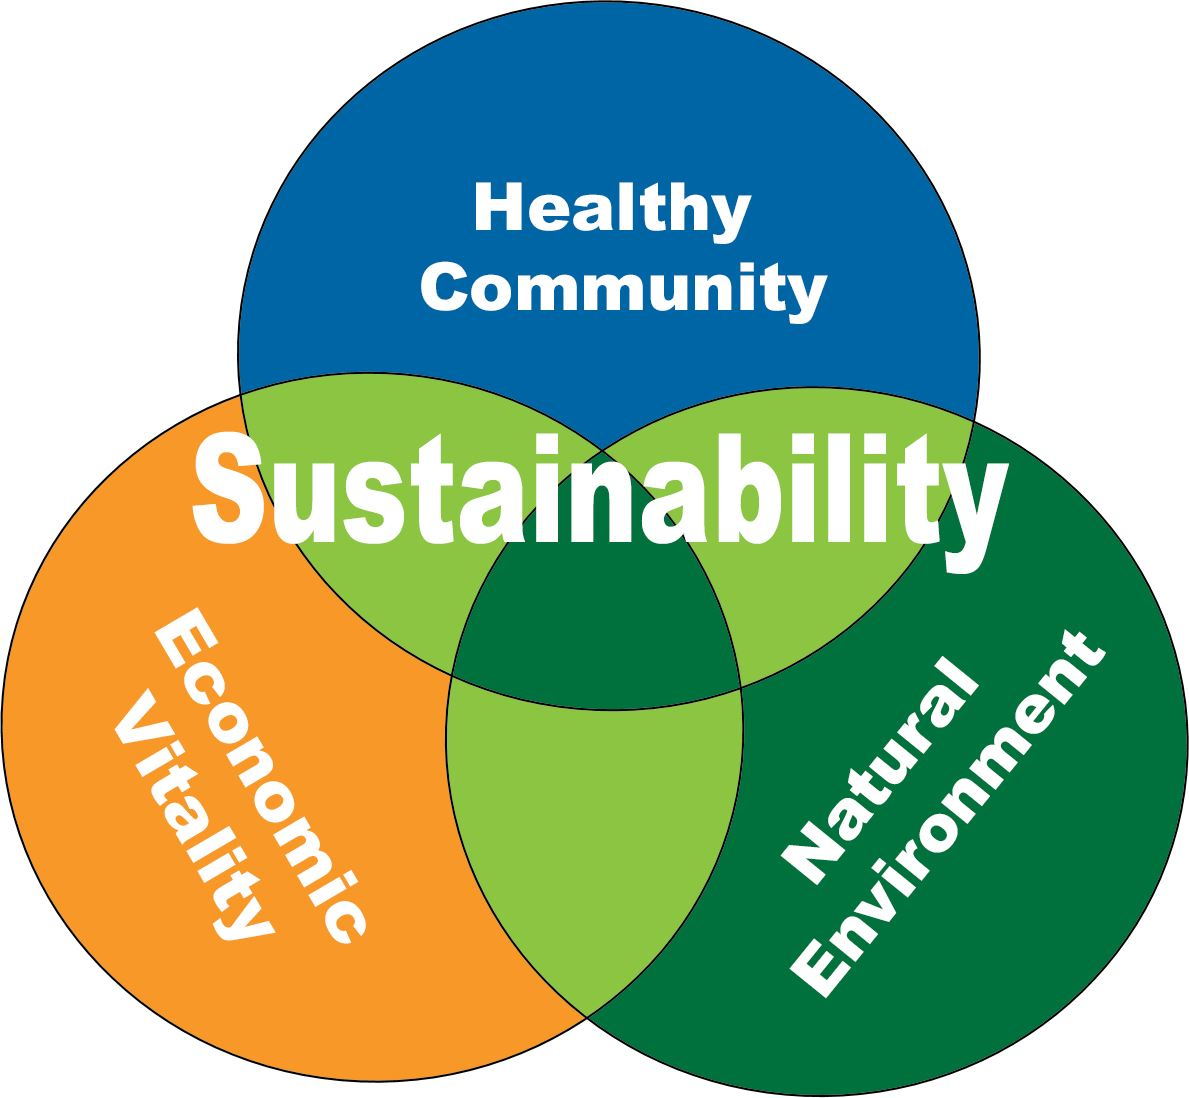 Three circles intersecting to illustrate sustainability